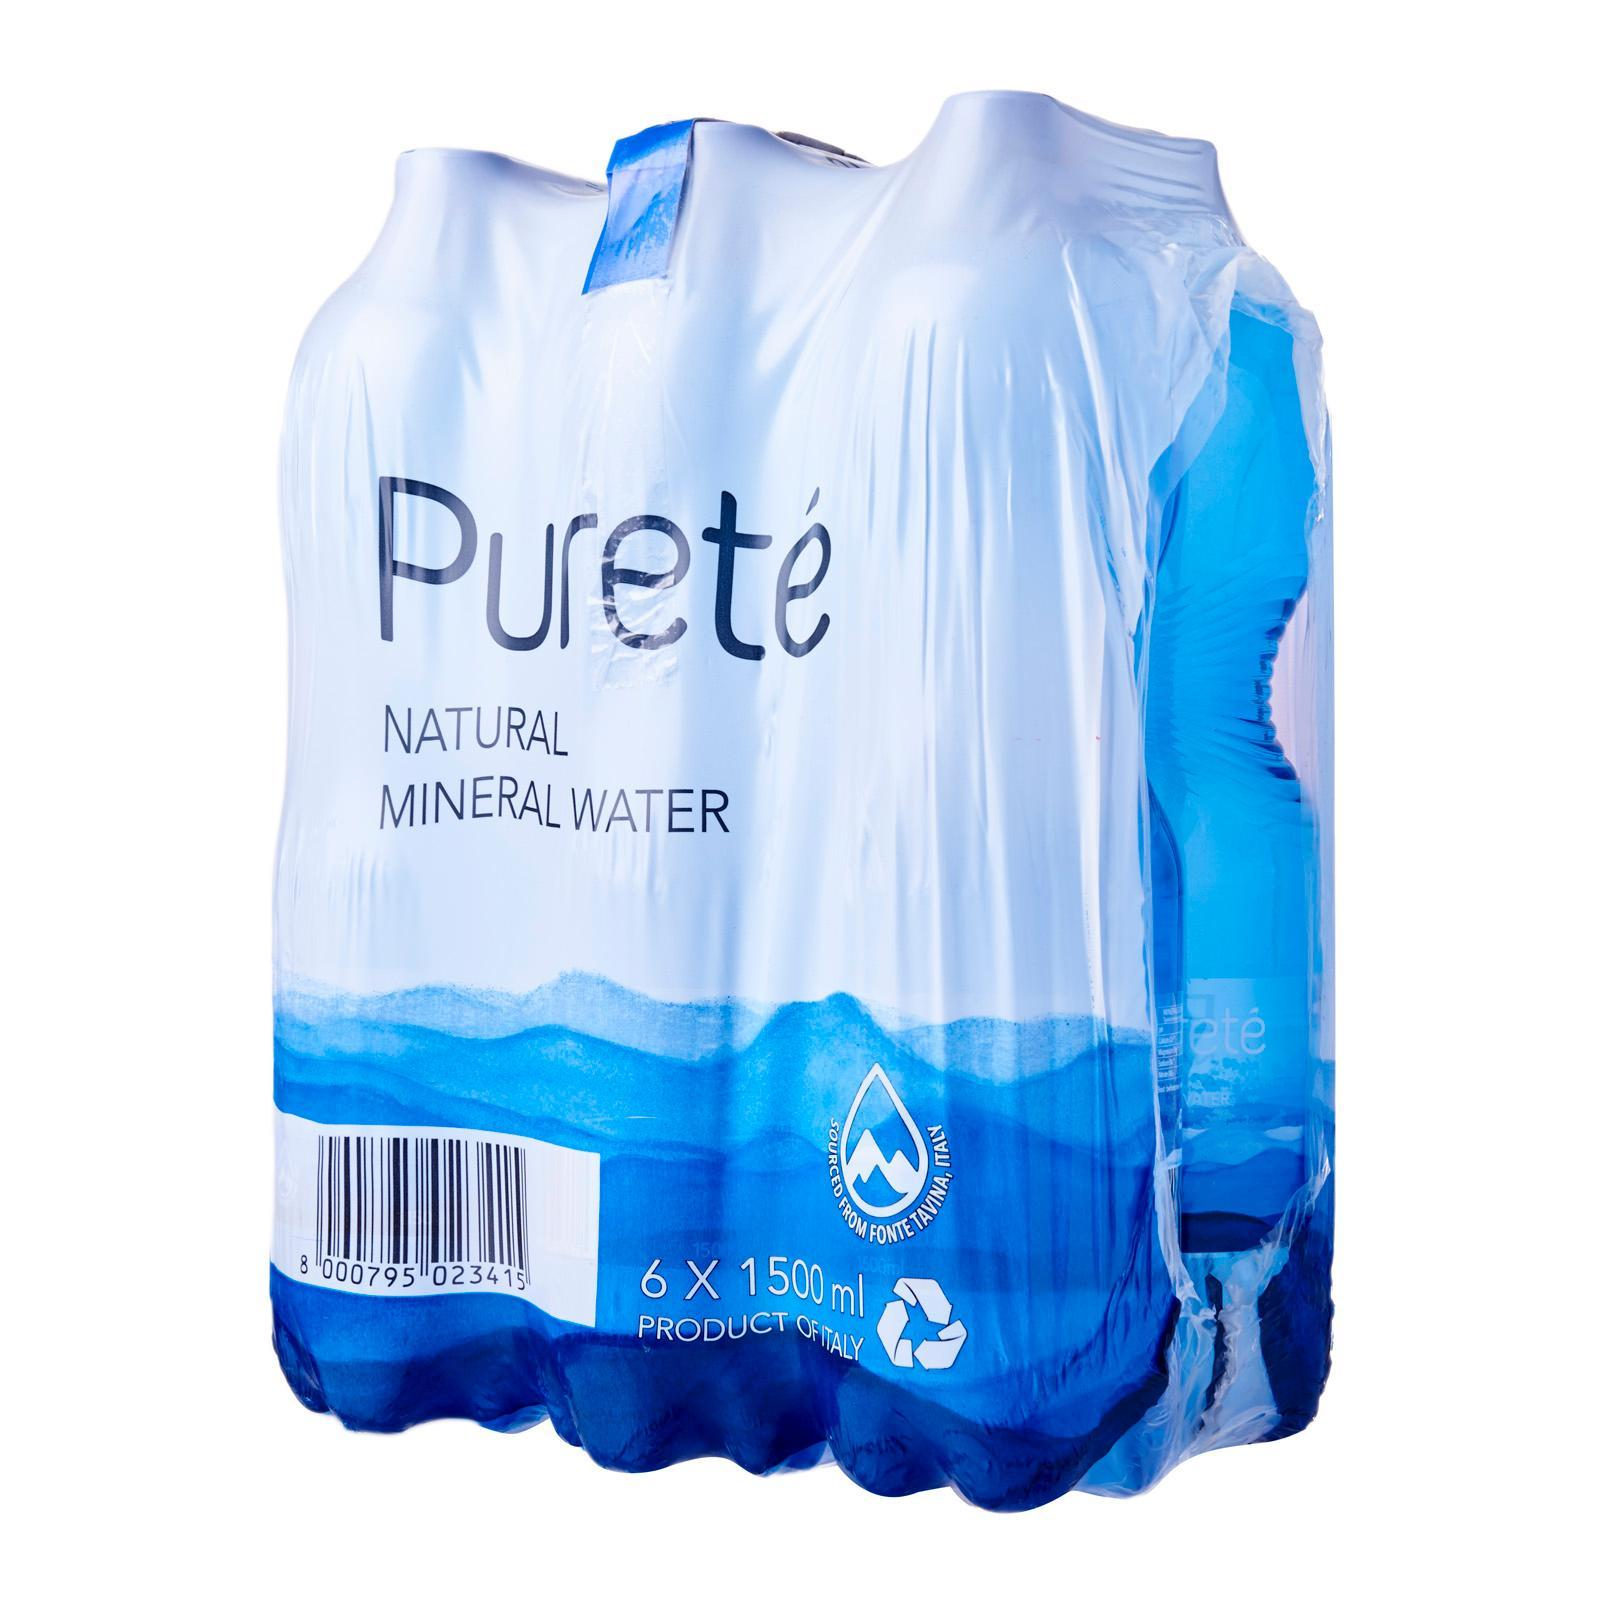 Yeo's Purete Natural Mineral Water - Case